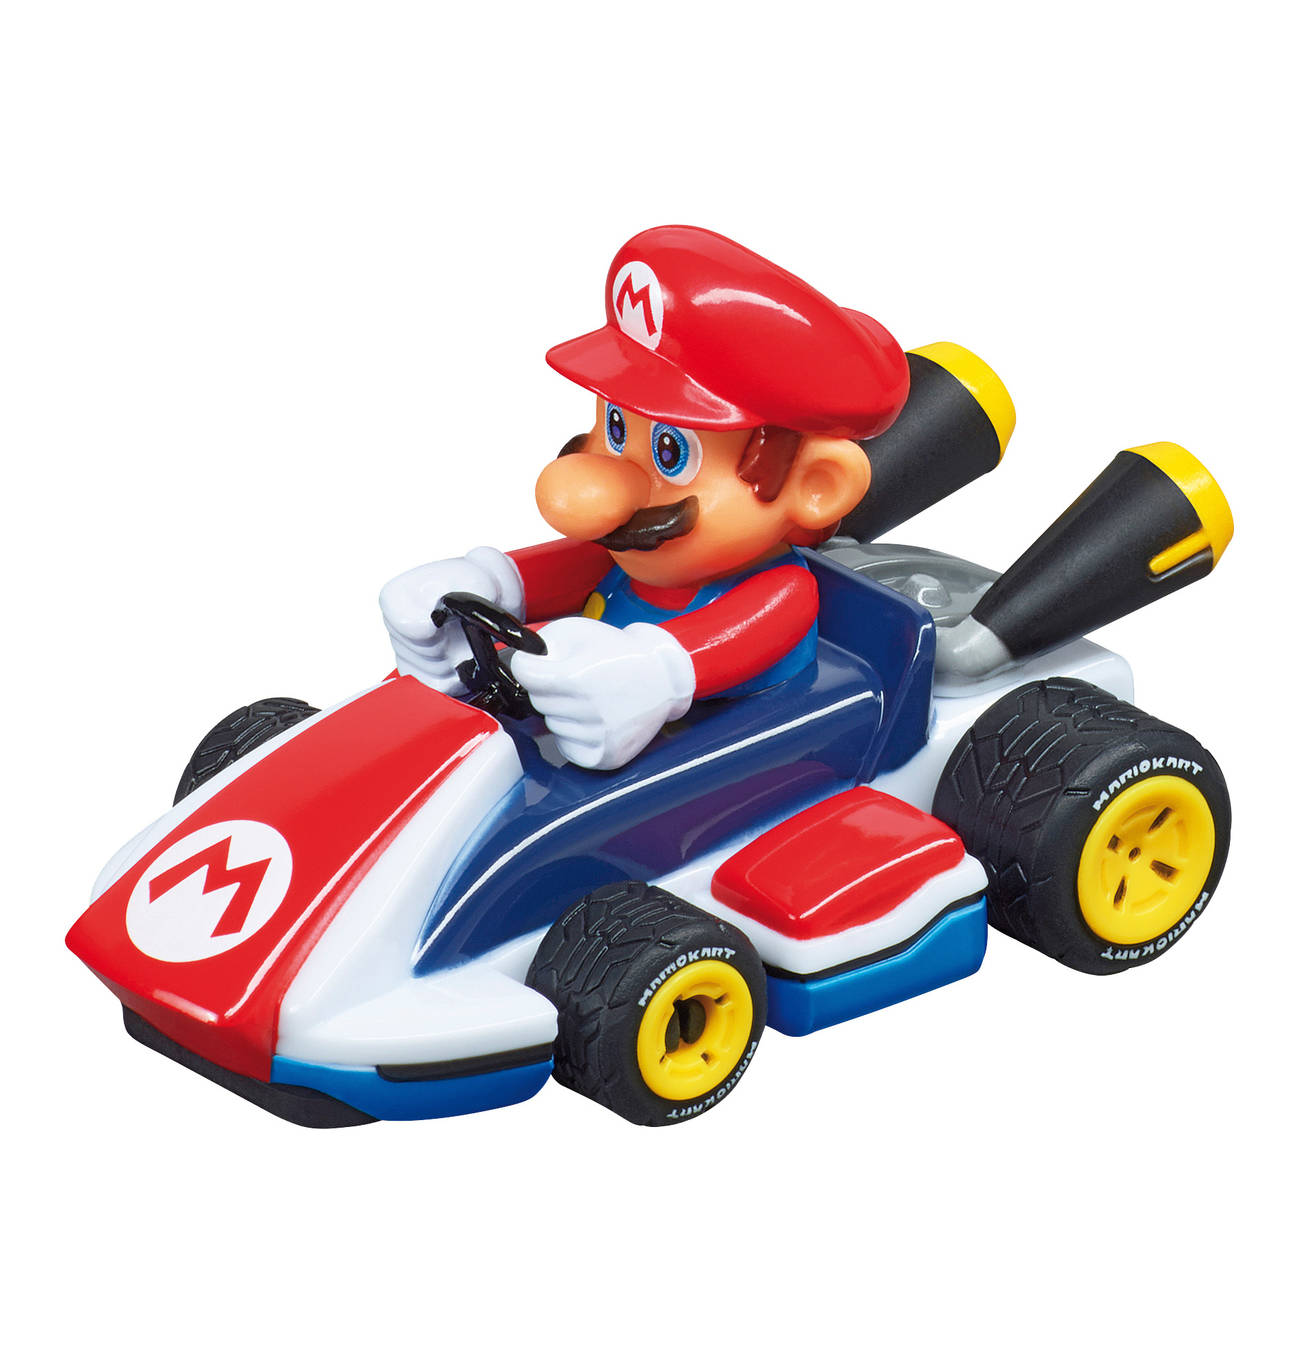 carrera mario kart race track instructions